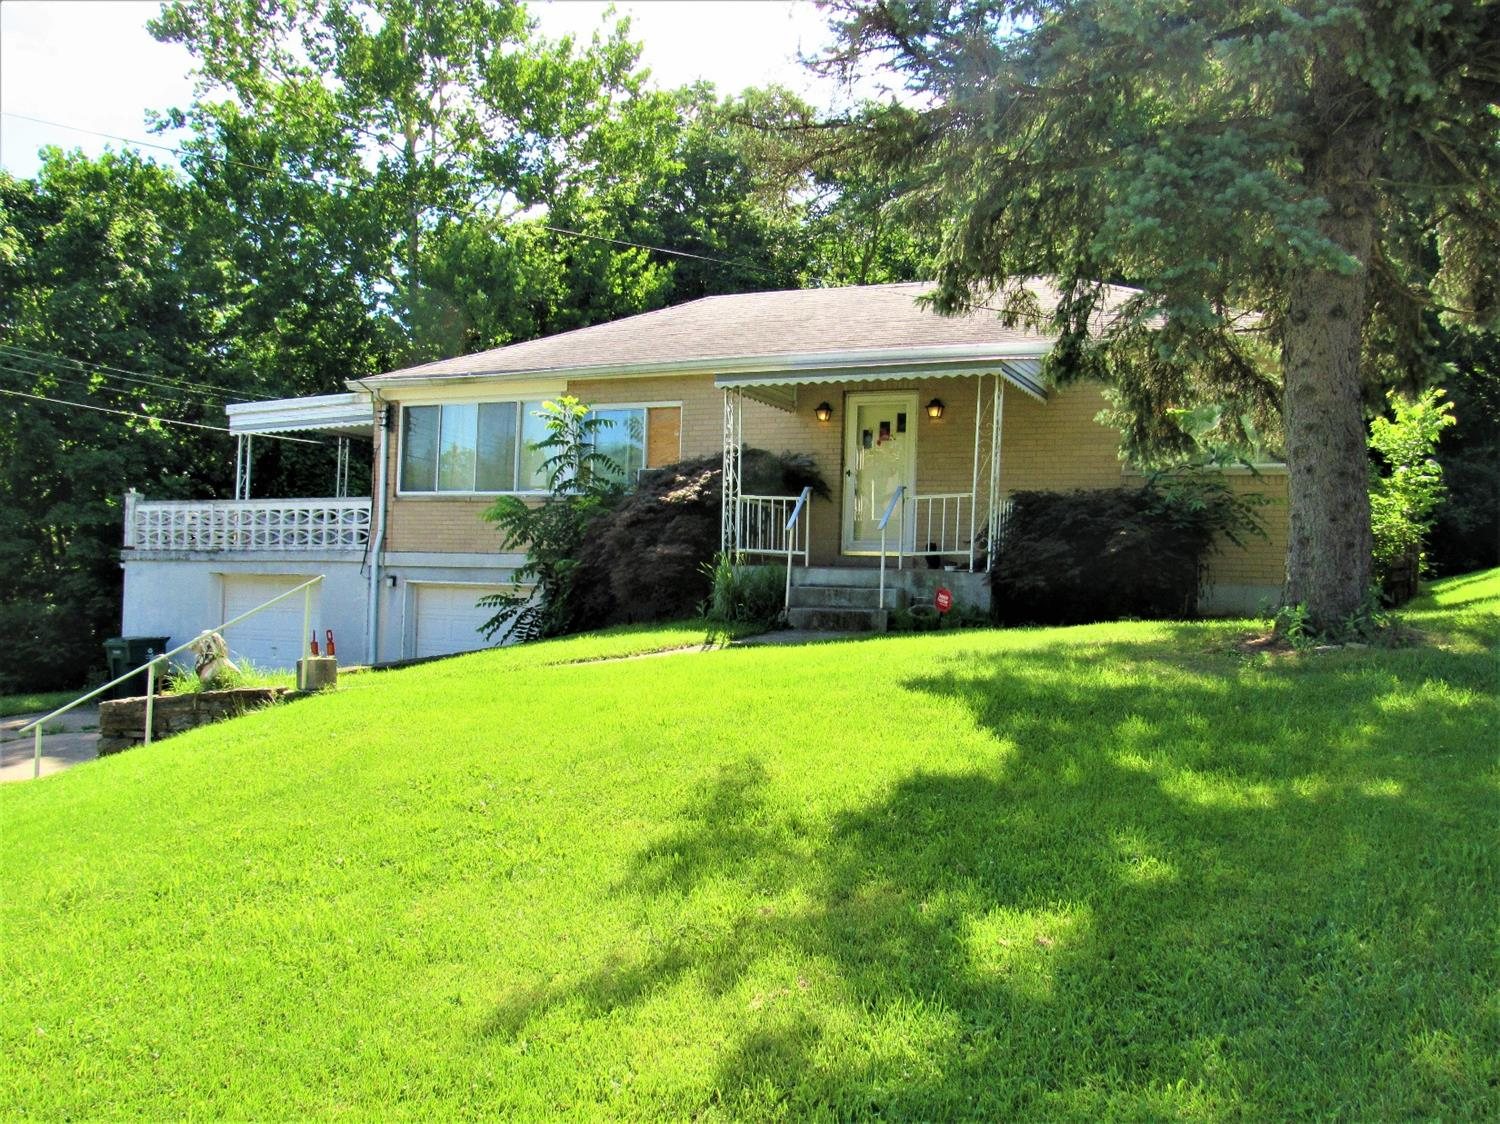 582 Trenton Ave Price Hill Oh 45238 Listing Details Mls